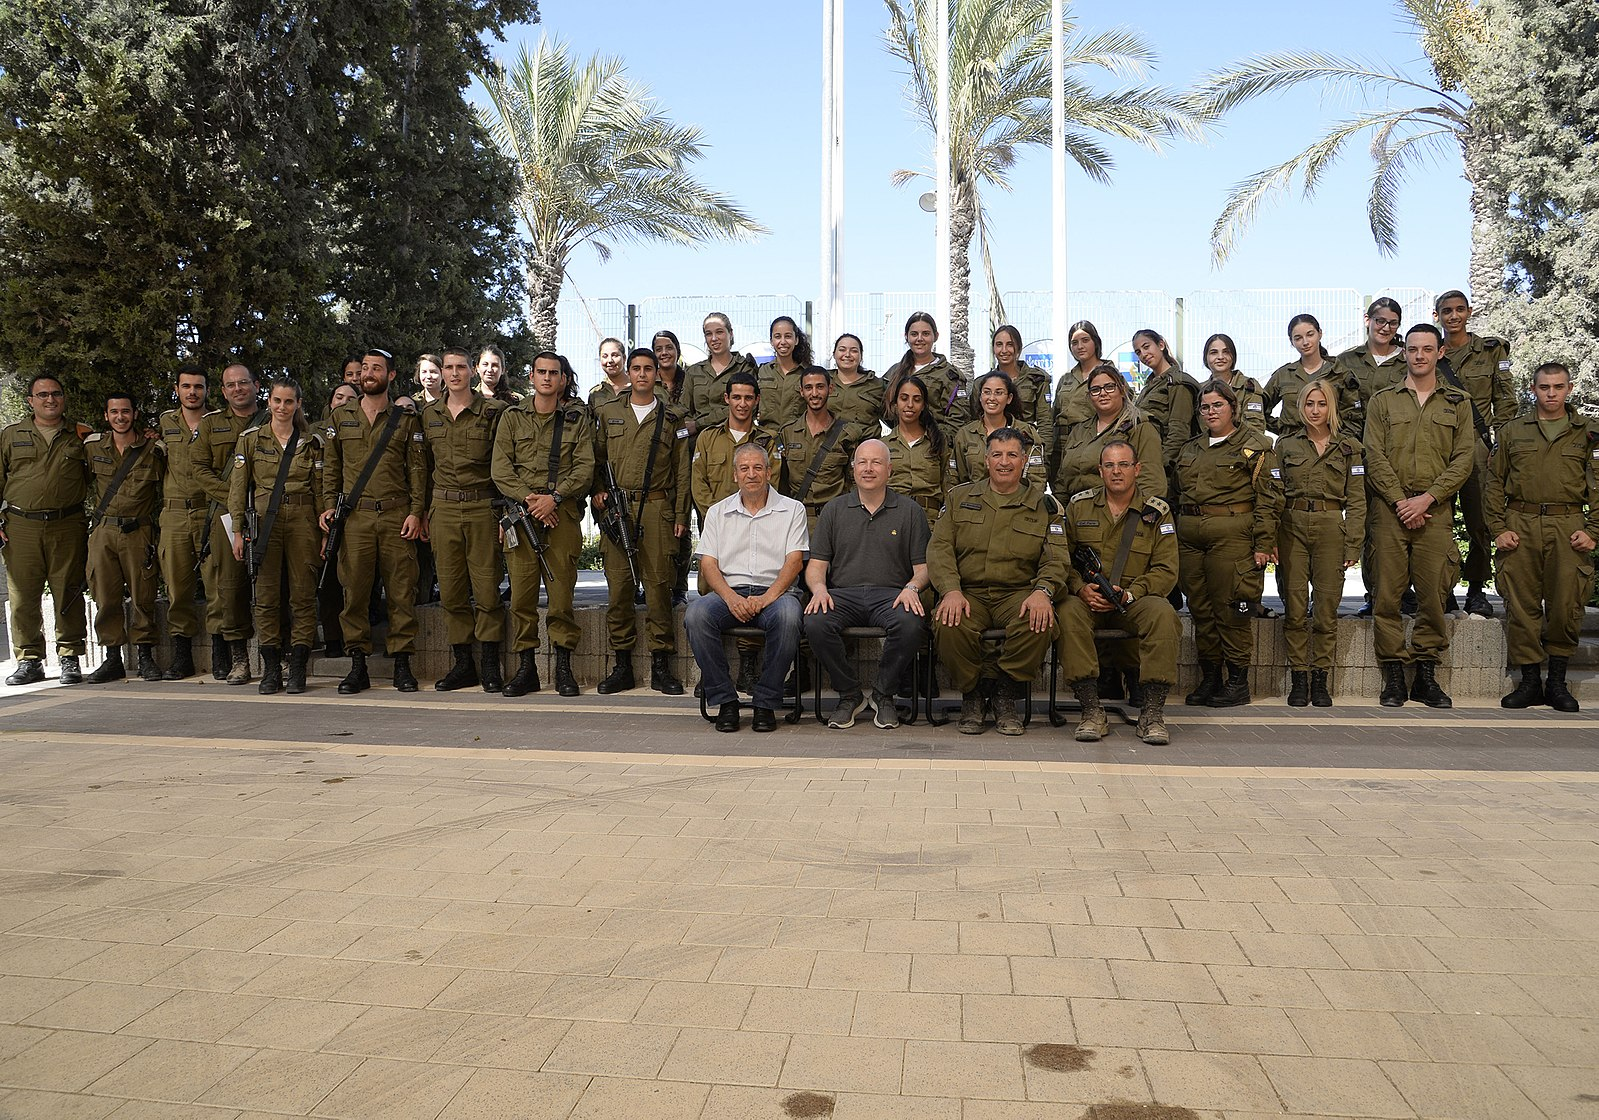 U.S. Special Representative for International Negotiations Jason Greenblatt (front row, center) touring Israel in August 2017 (Wikimedia Commons)